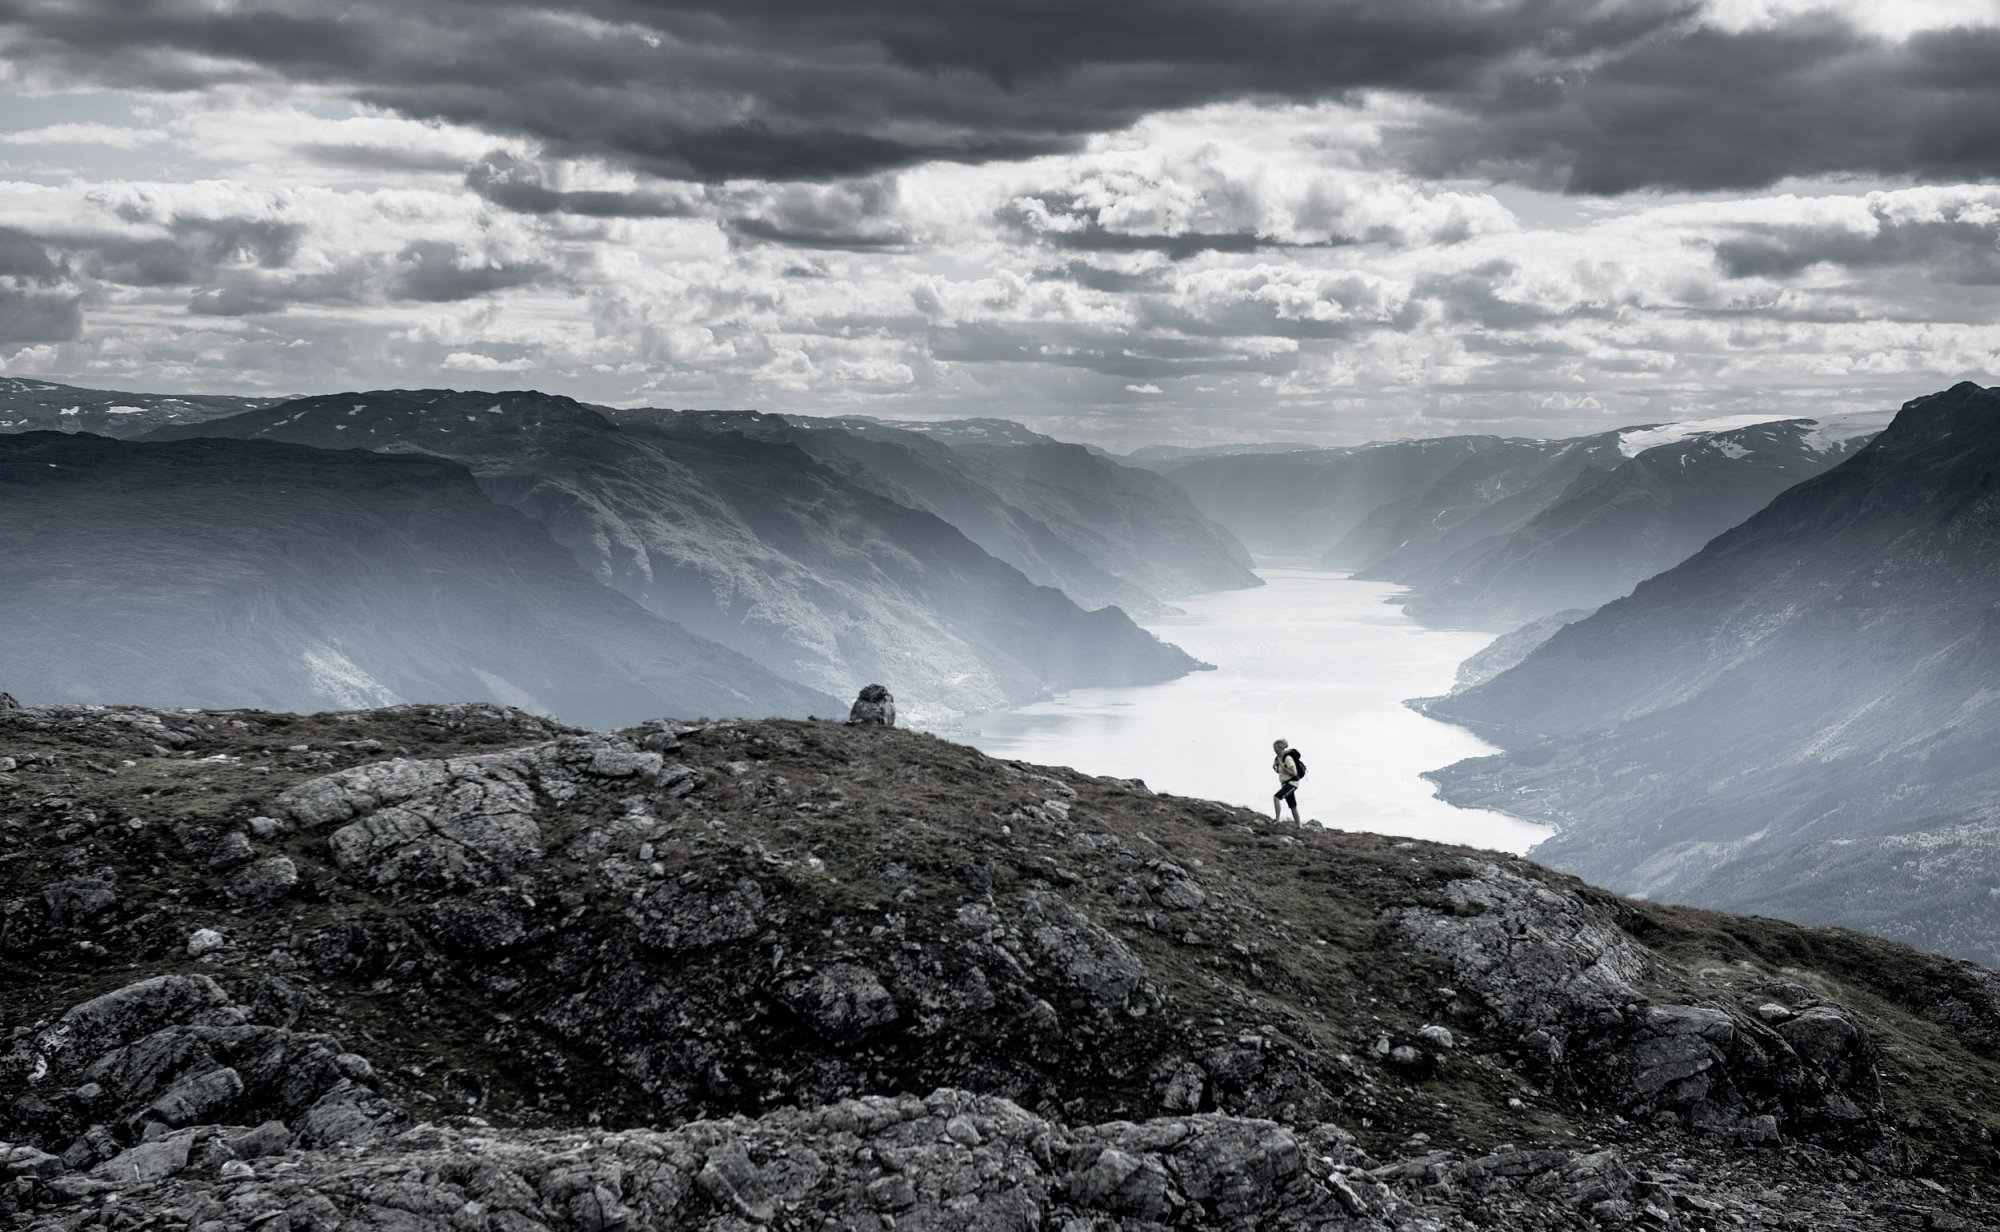 Hiking alongside the Hardangerfjord. Private project.